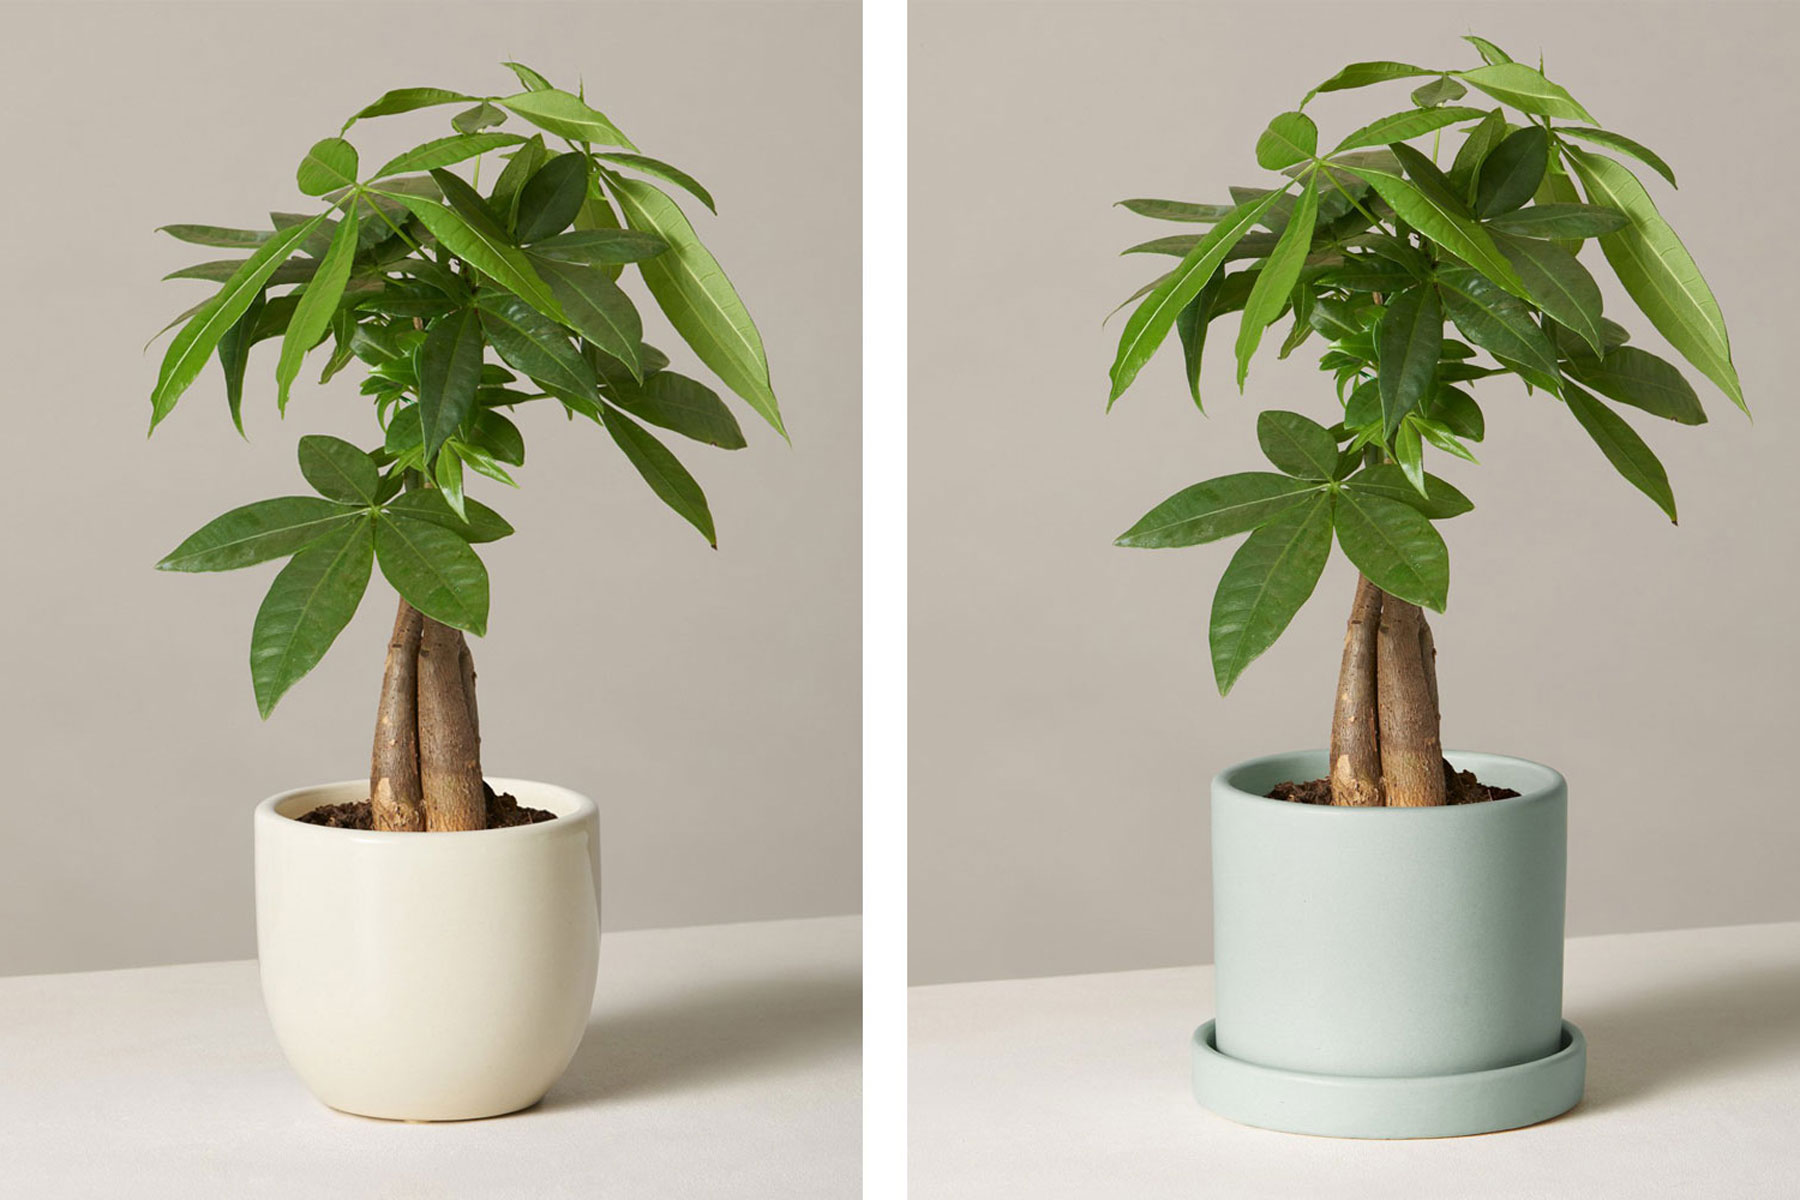 Money tree plants in ceramic pots